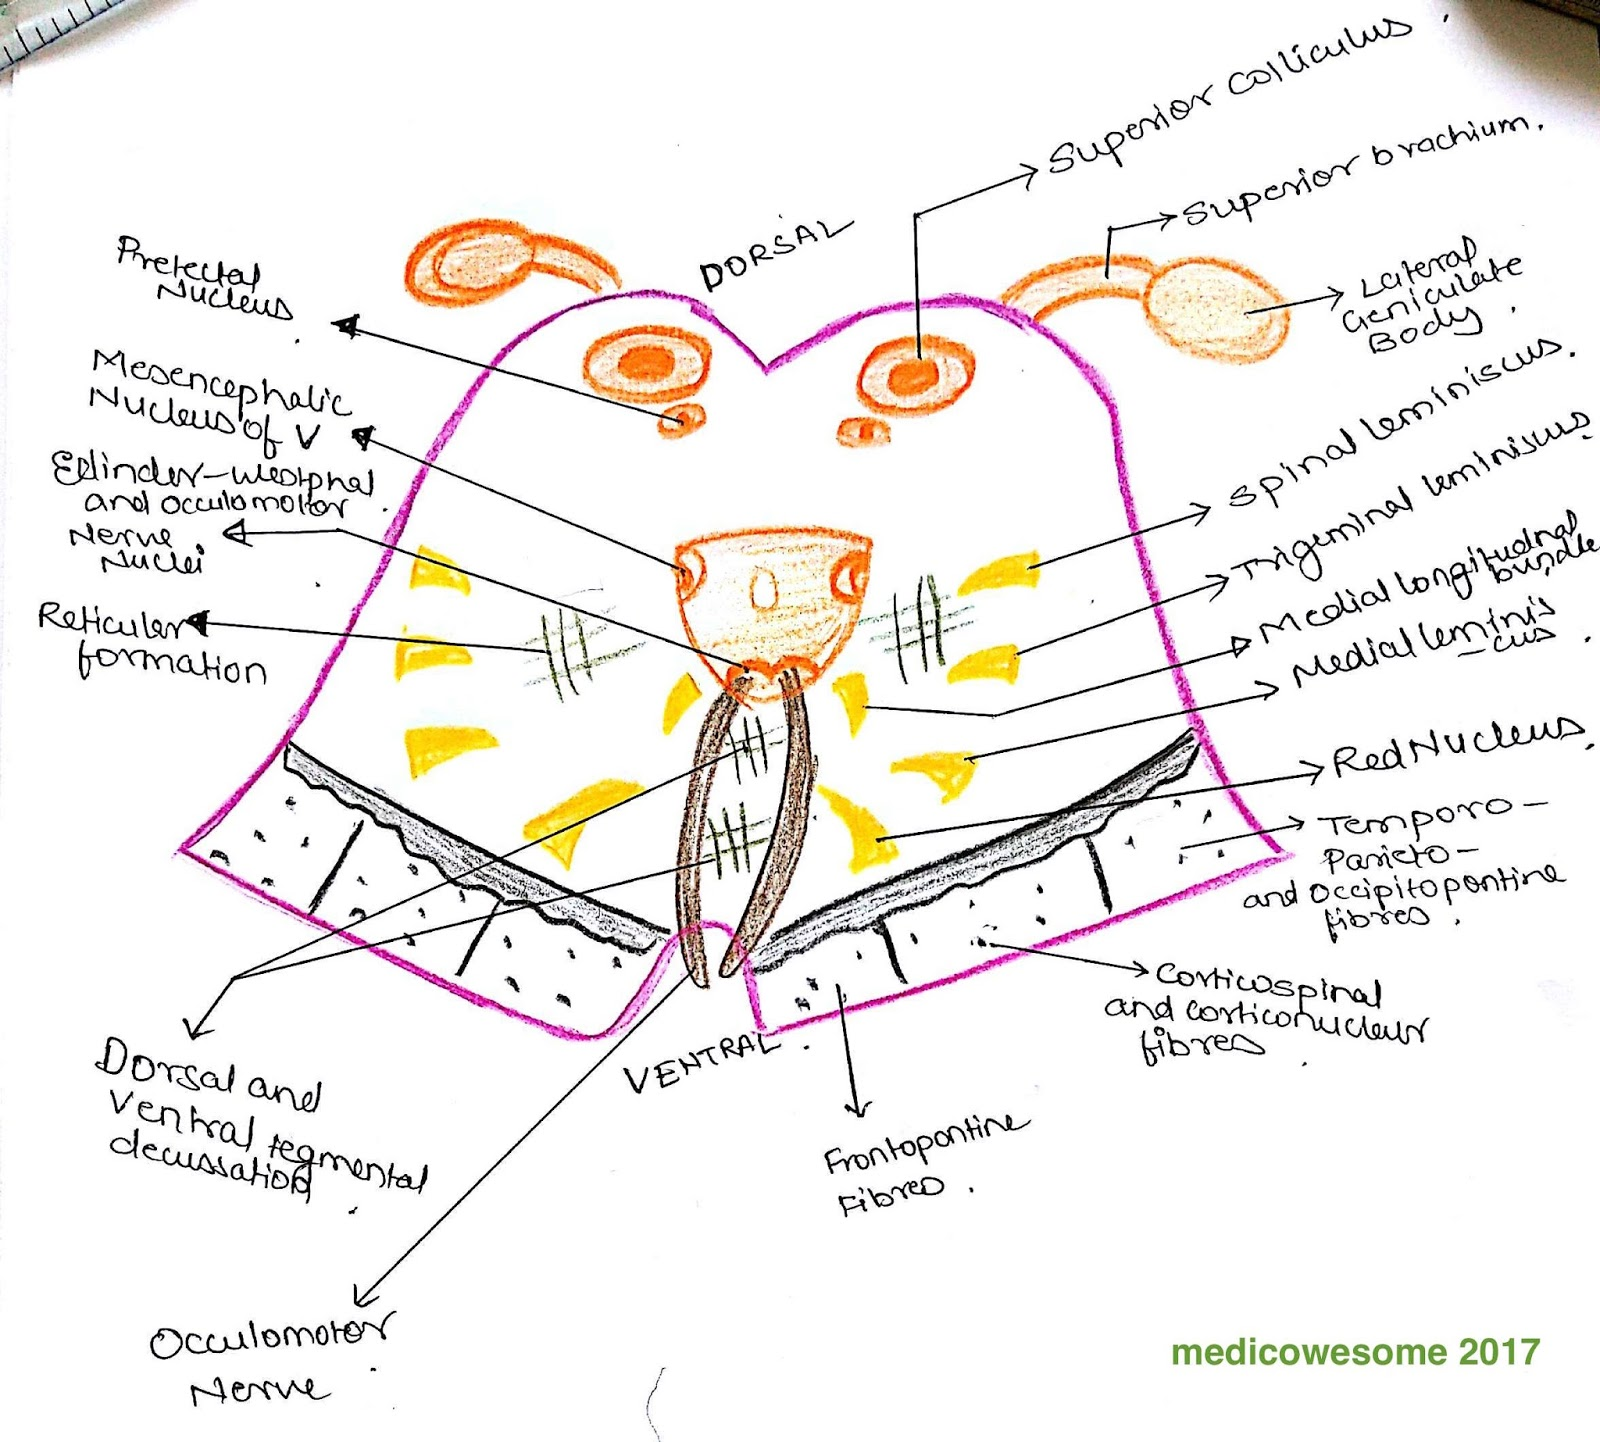 Medicowesome How To Draw Midbrain Sections And Lesions